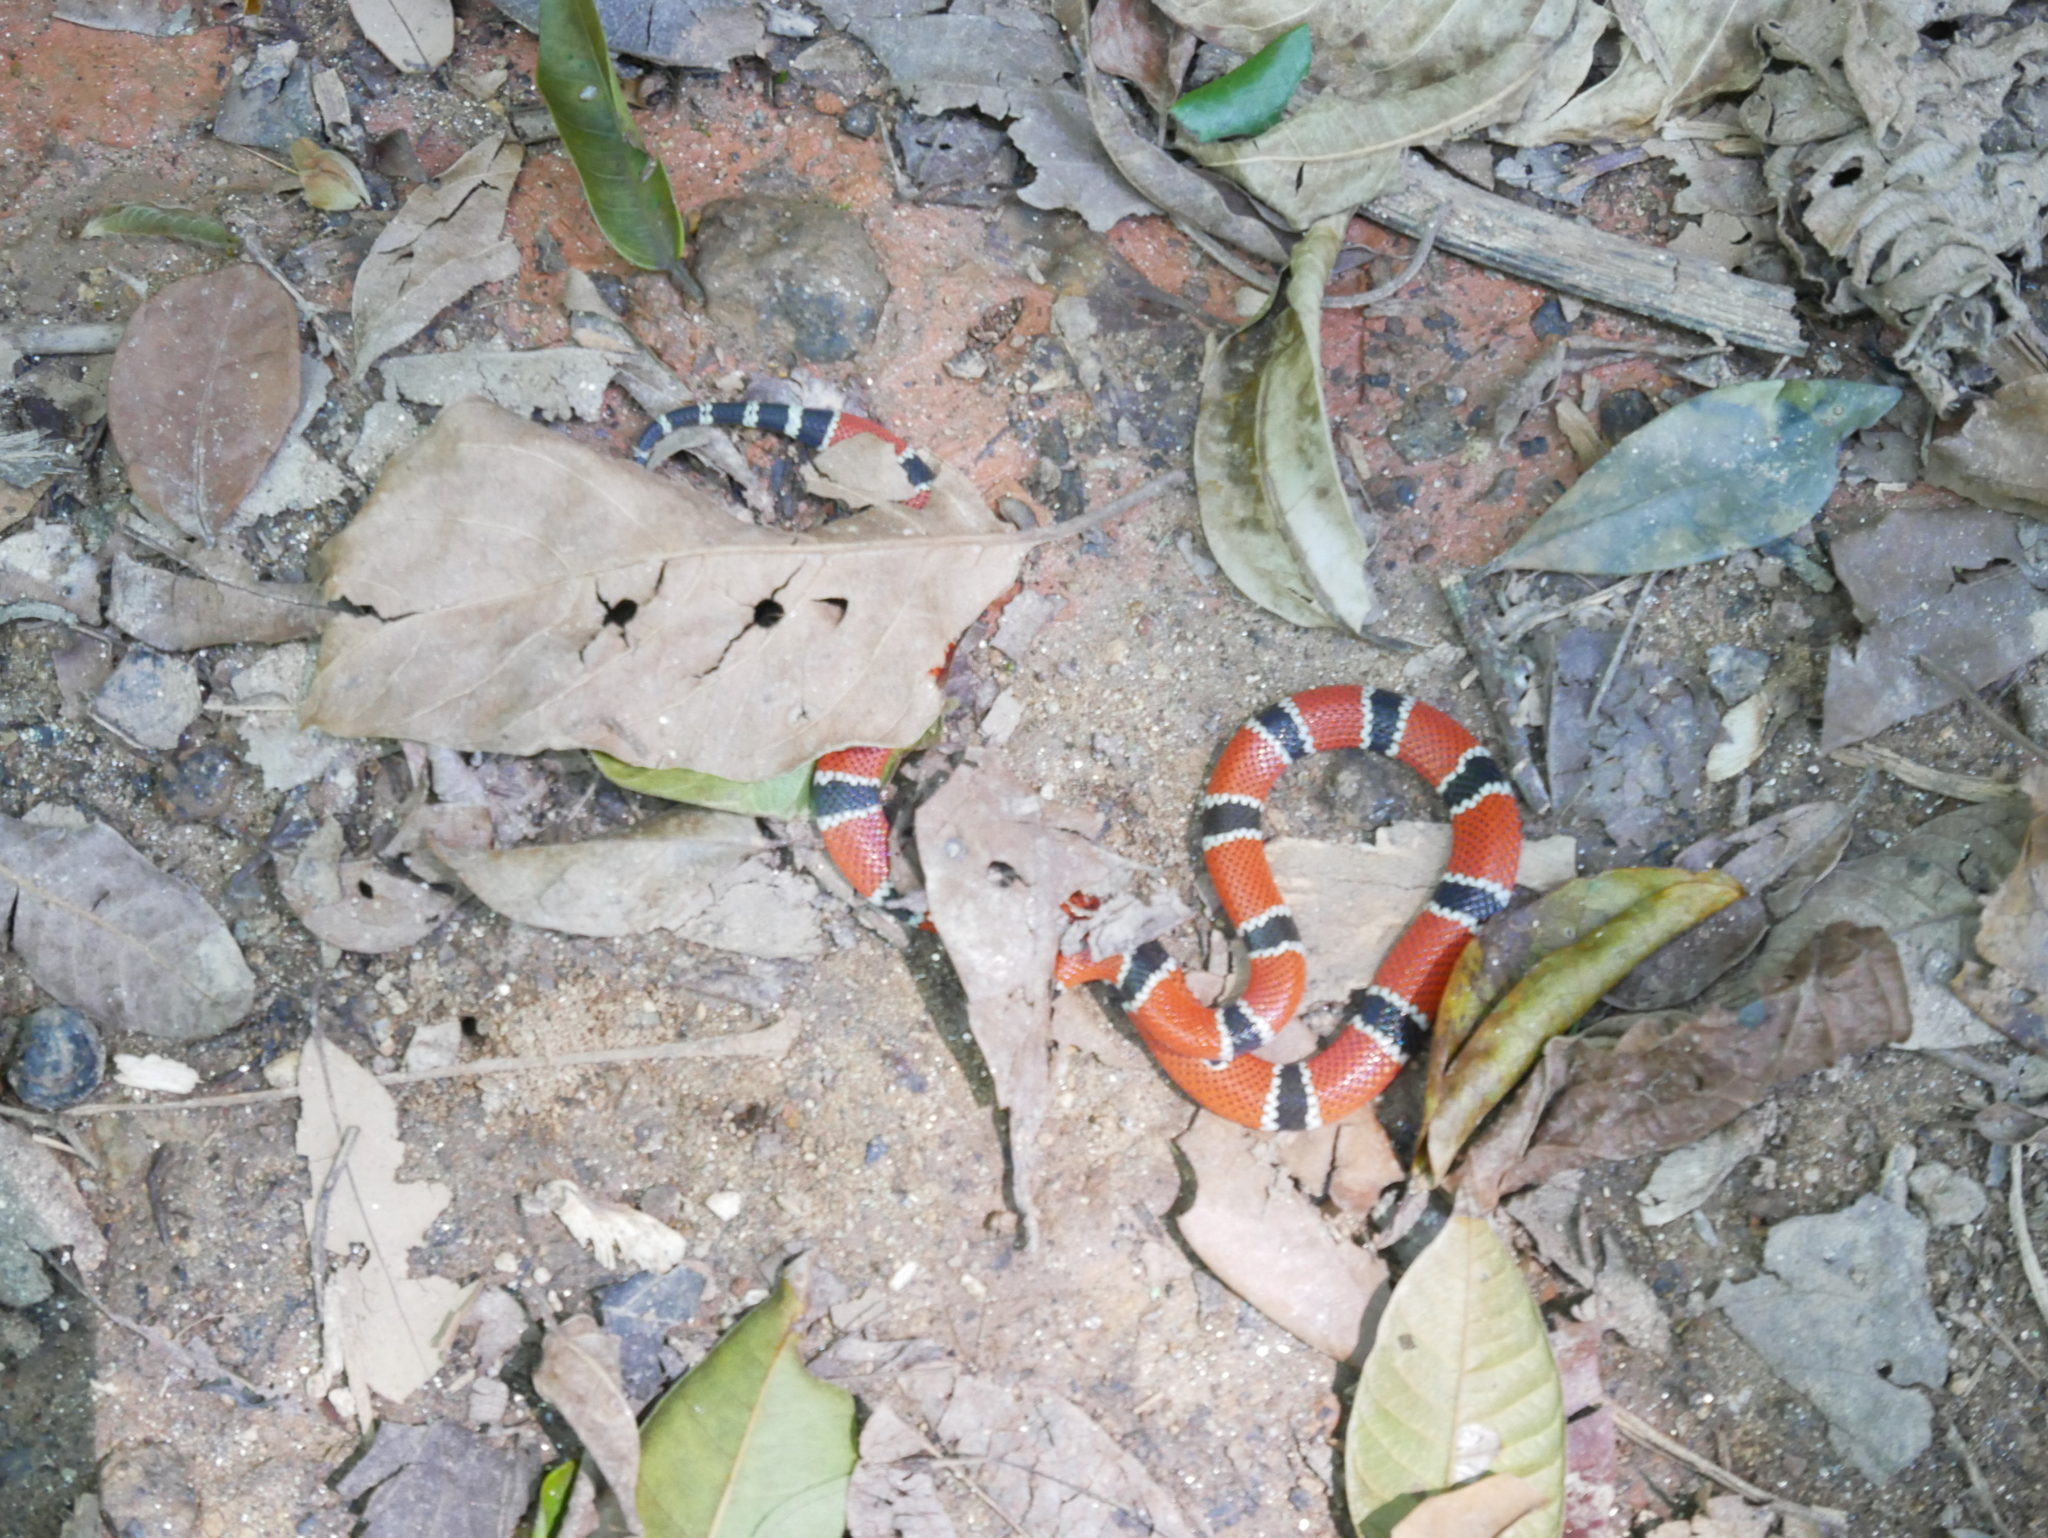 Poisonous snake we saw on our hike